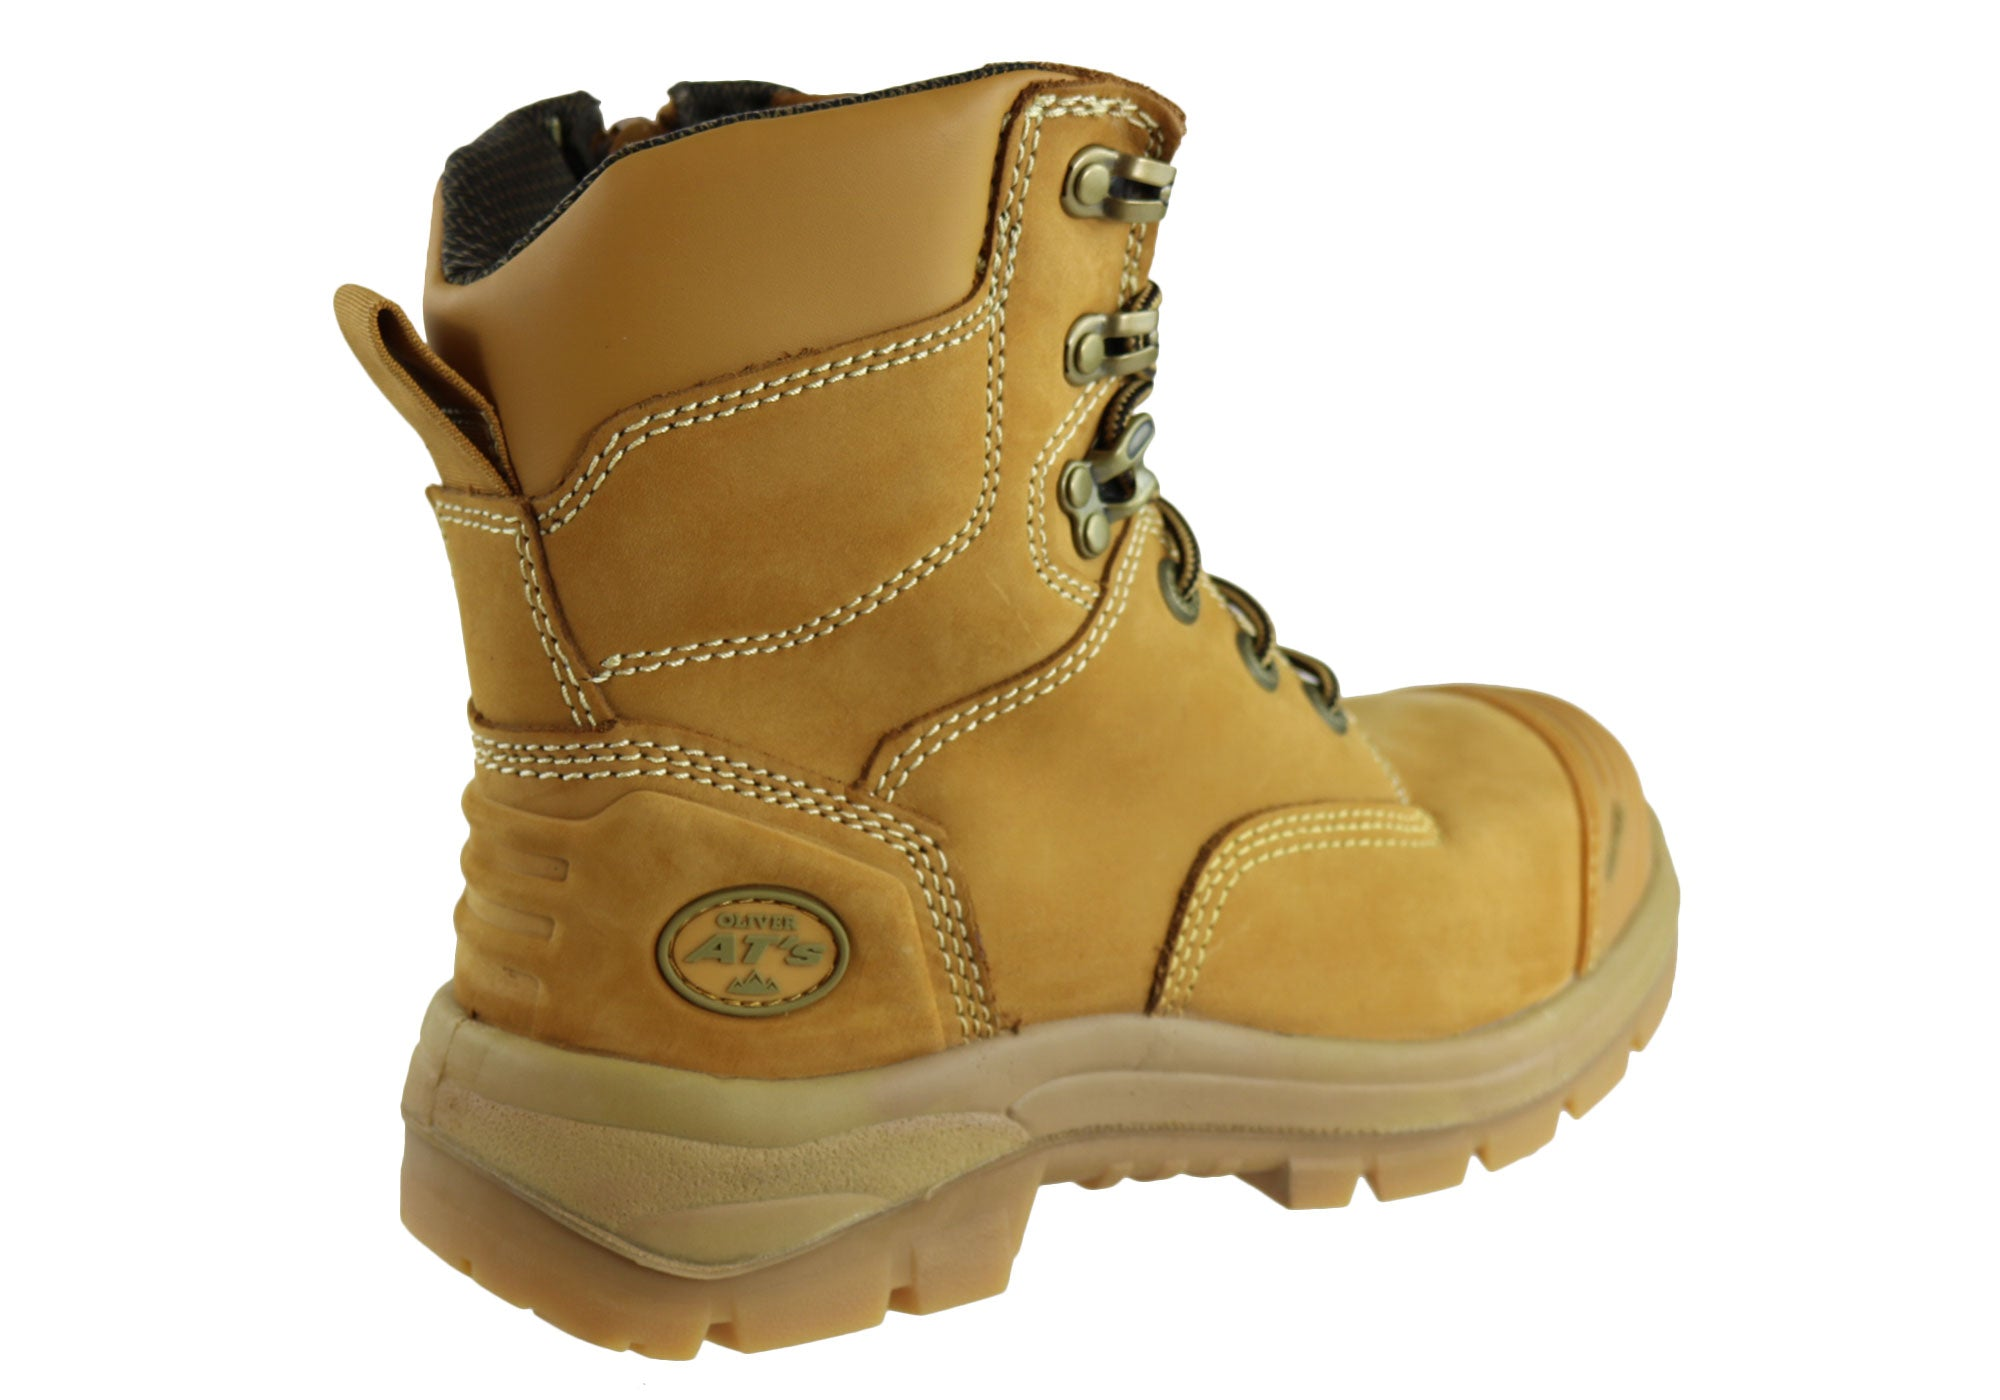 06b0ca5c61f Details about Oliver At 55332Z Lace Up Zip Side Steel Cap Work Boots Mens -  WorkWearZone